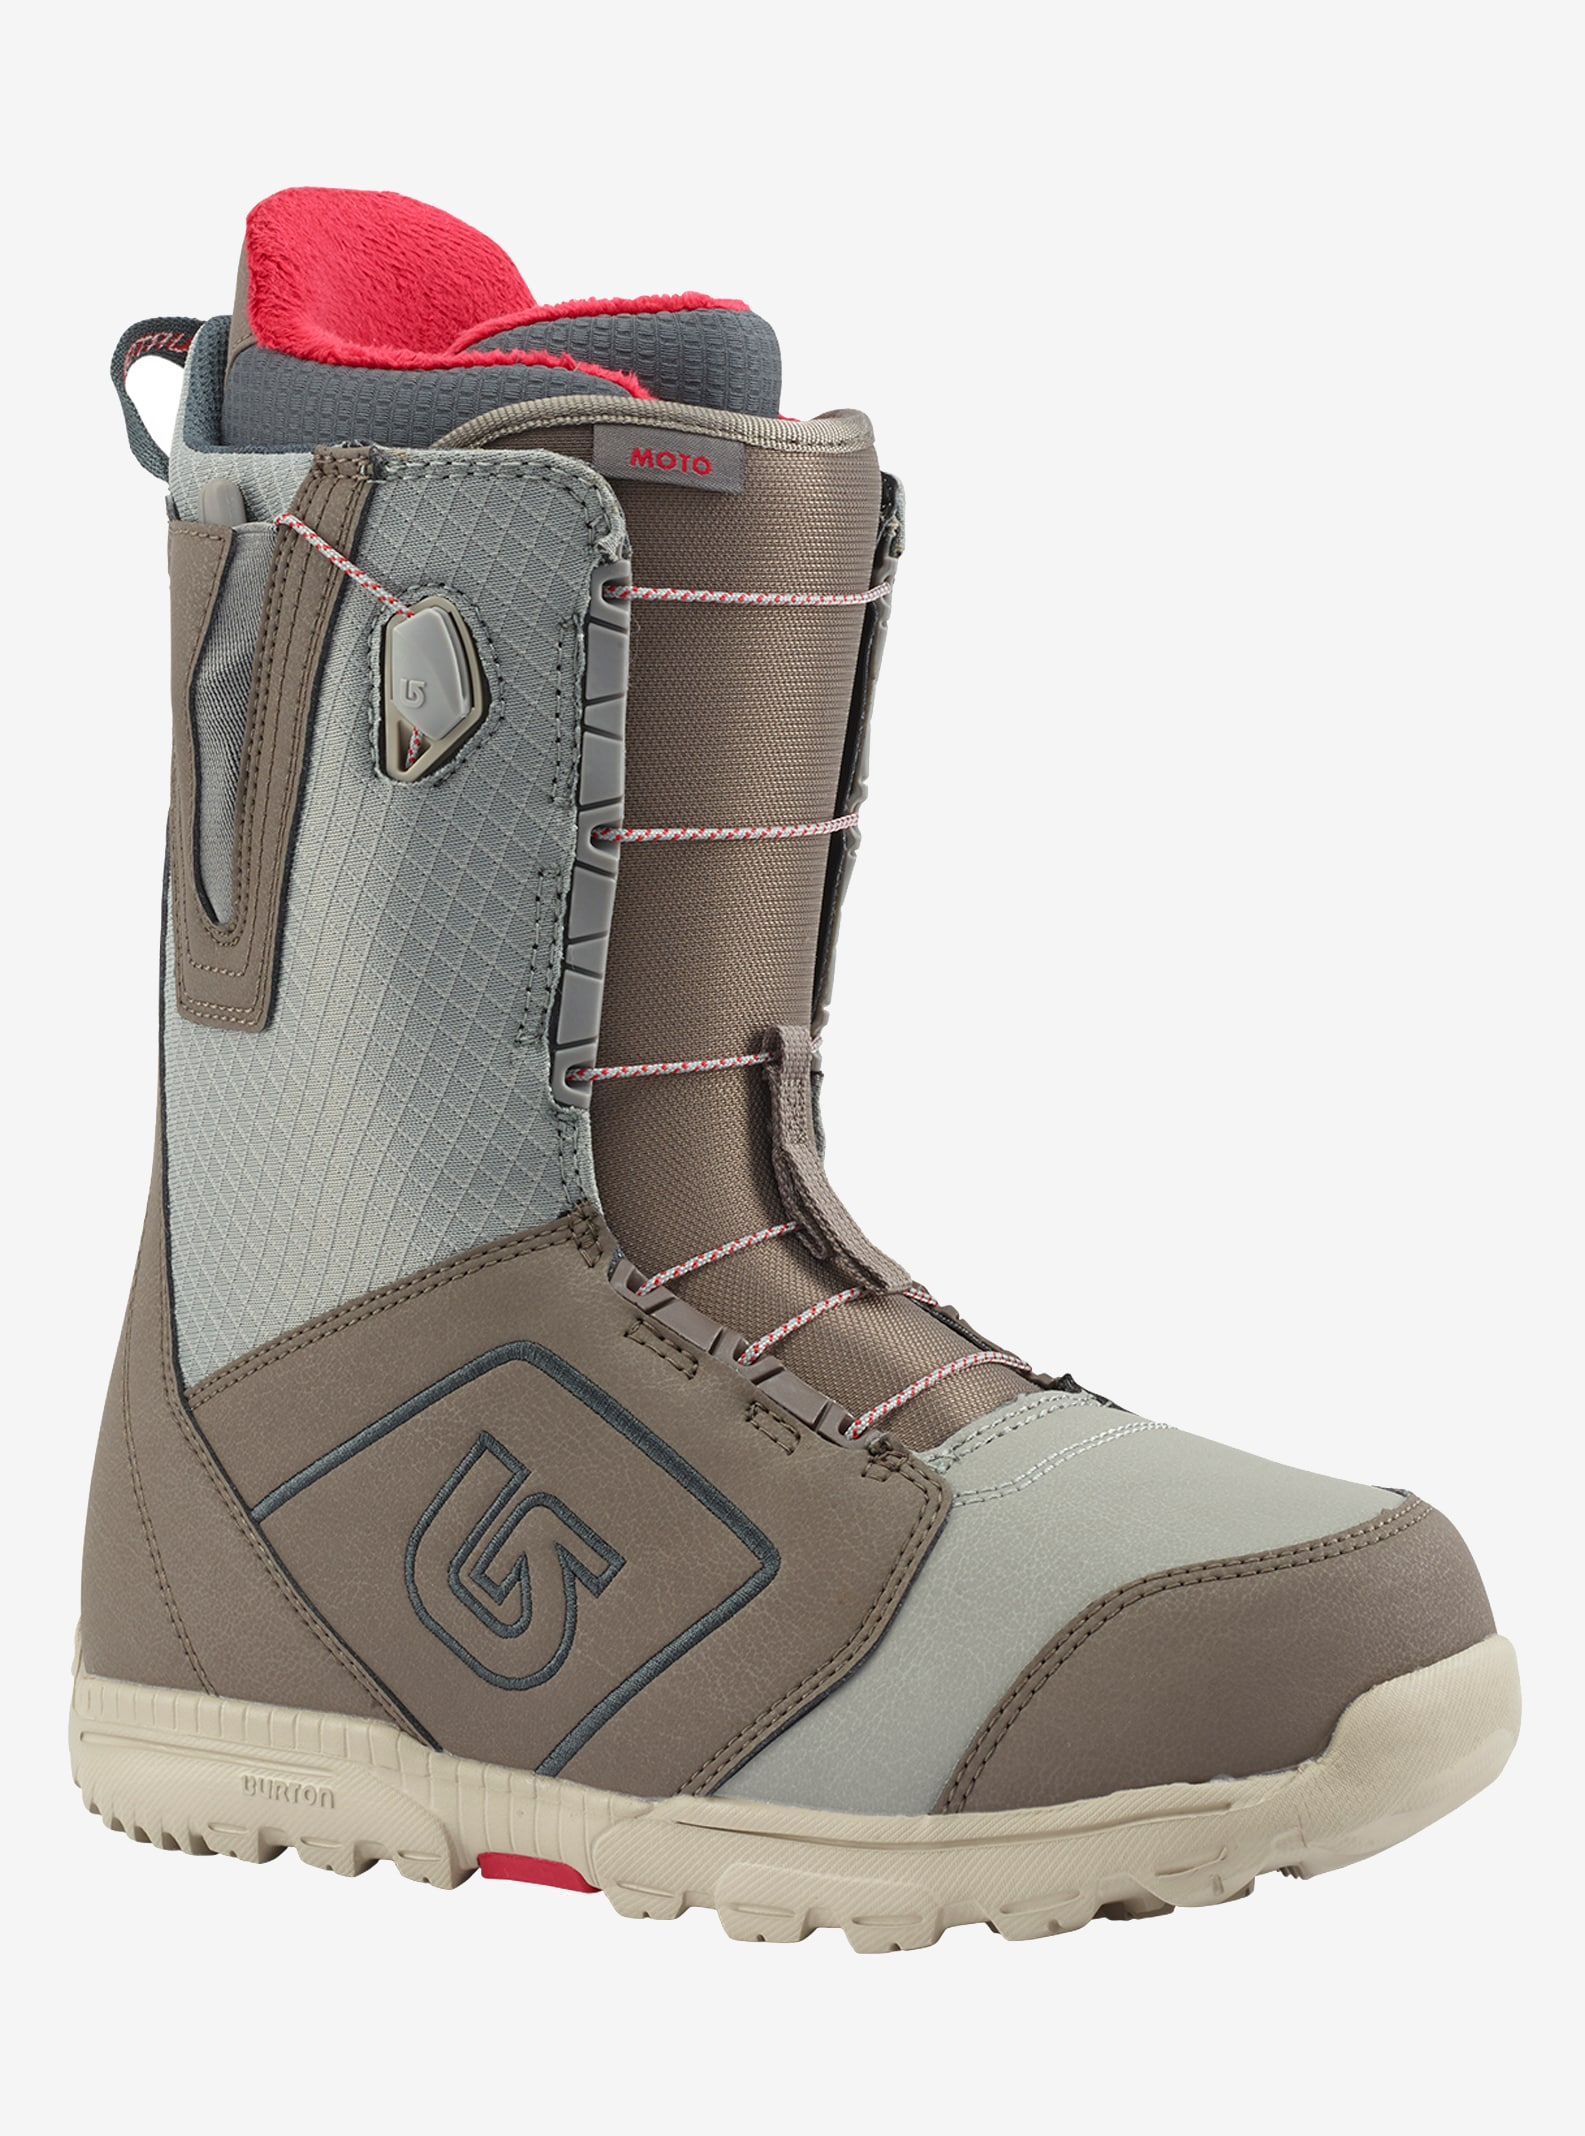 Men's Burton Moto Snowboard Boot shown in Gray